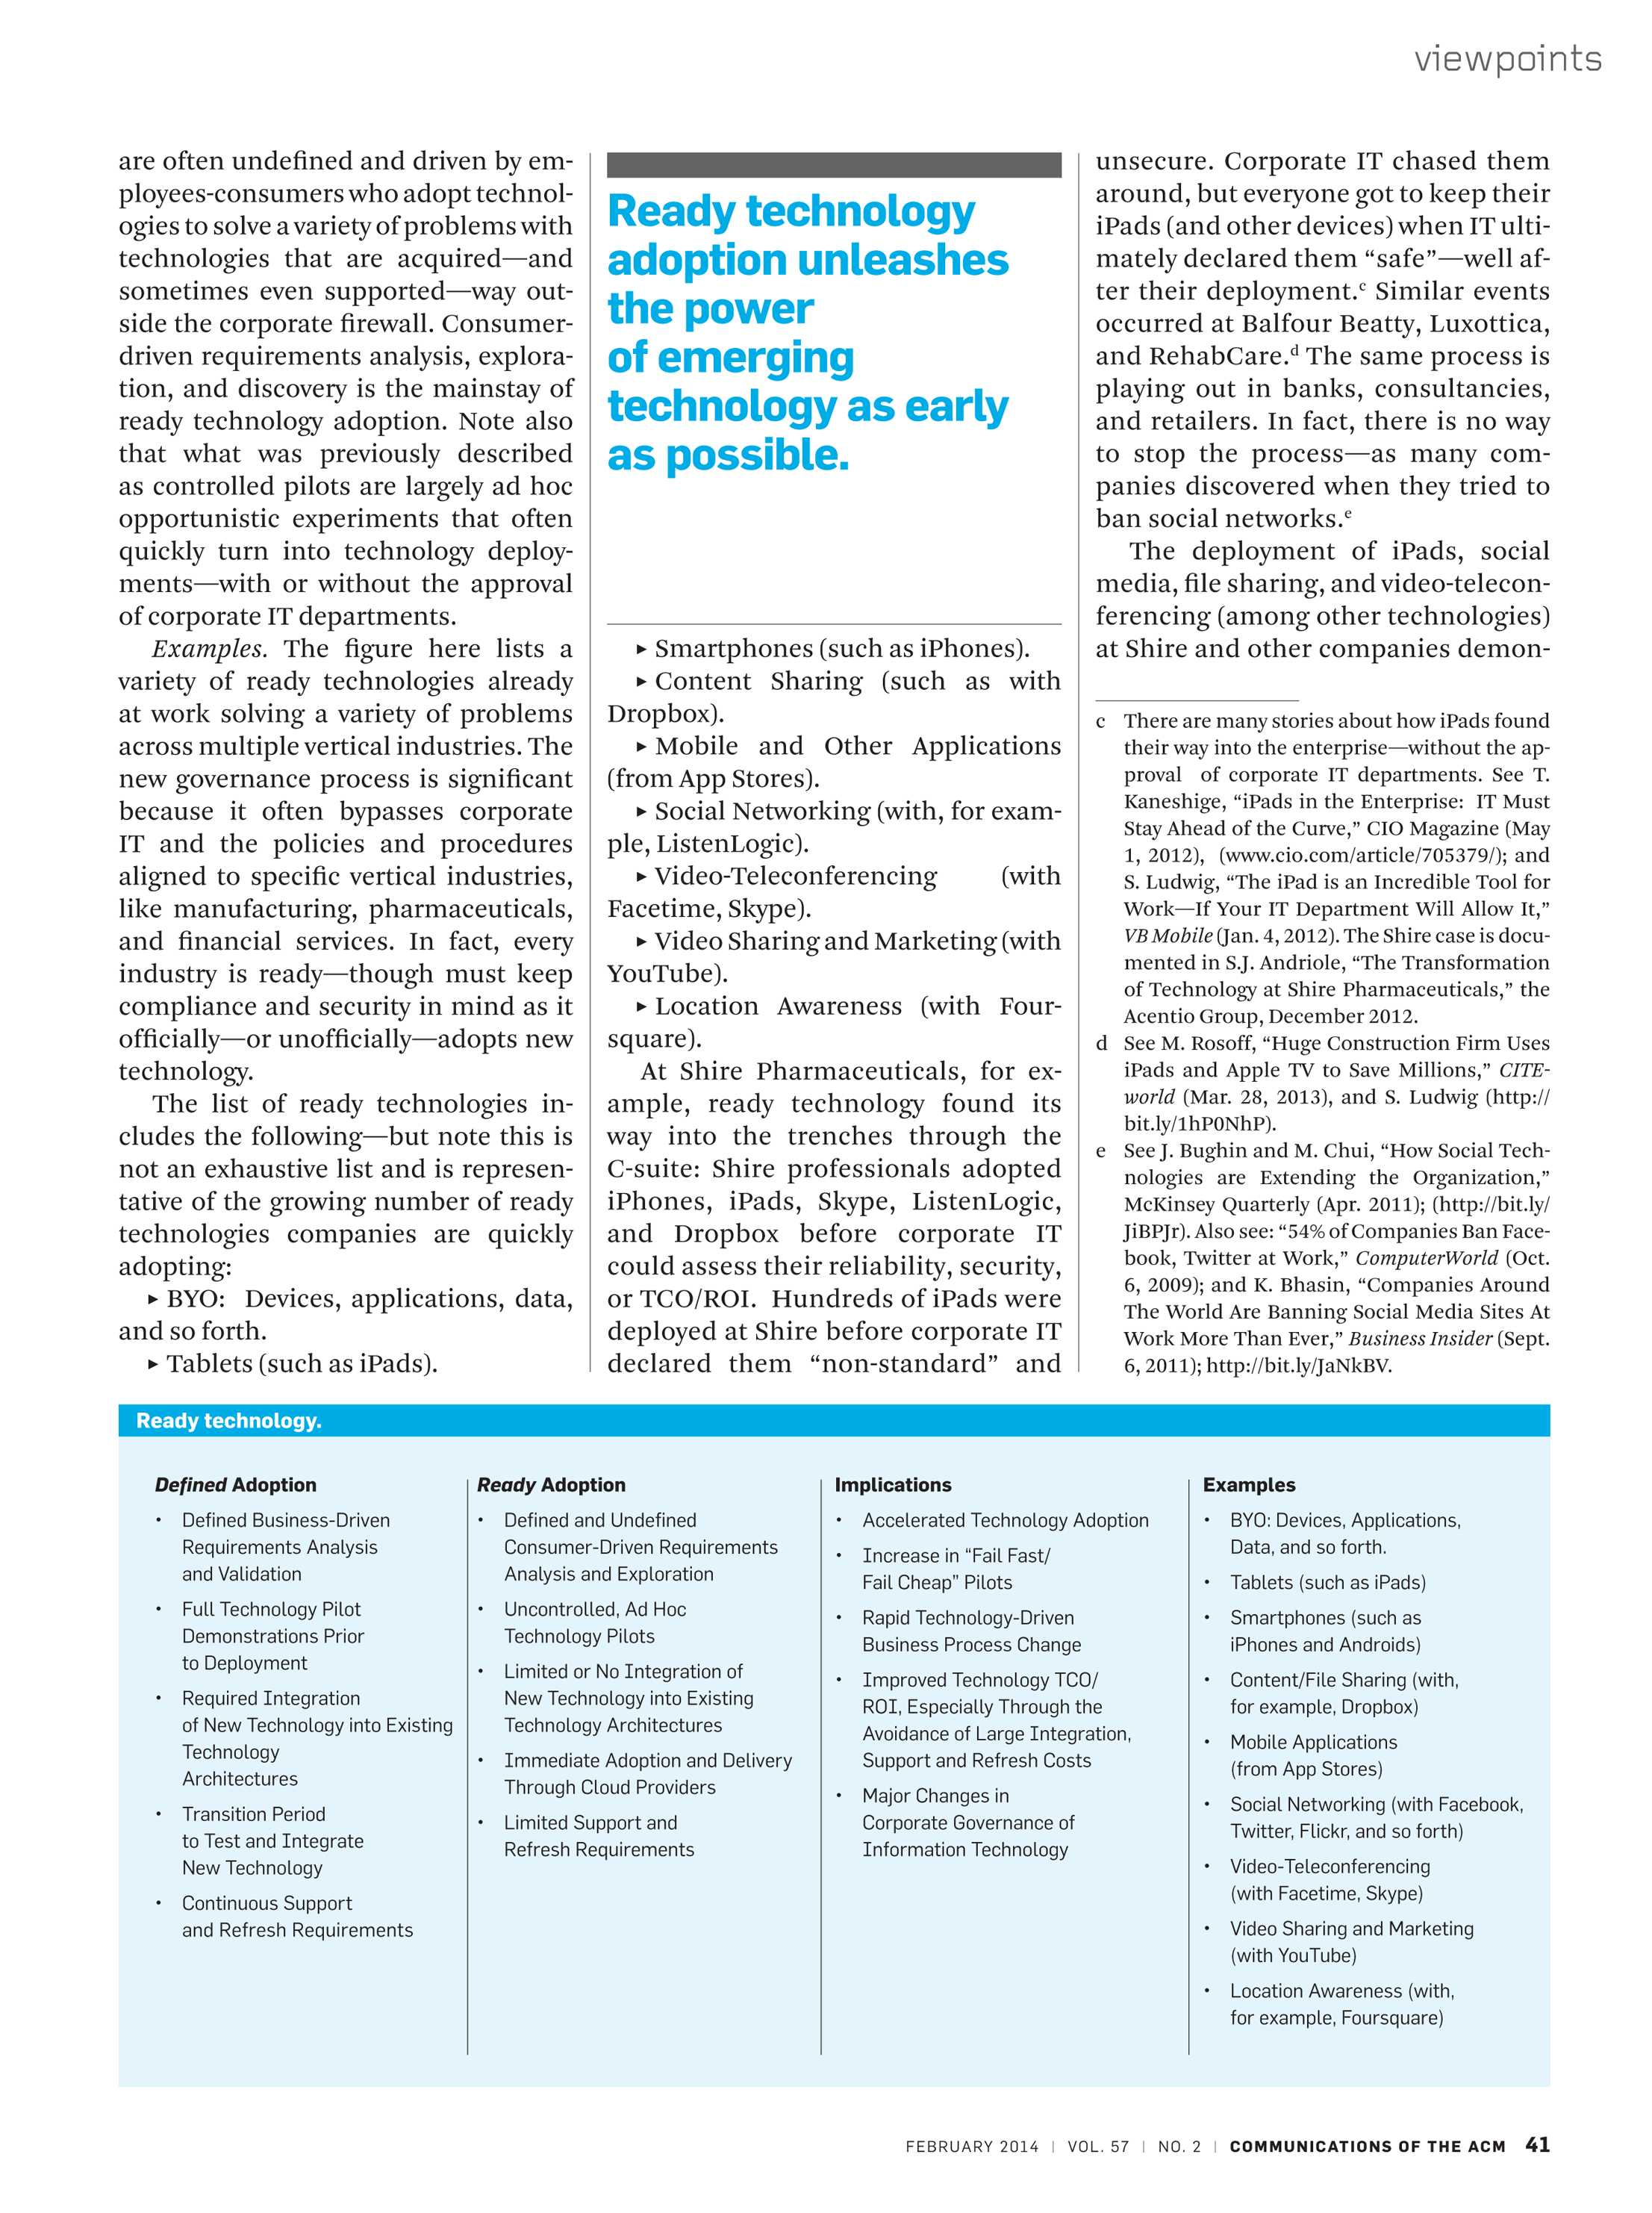 Communications of the ACM - February 2014 - page 41